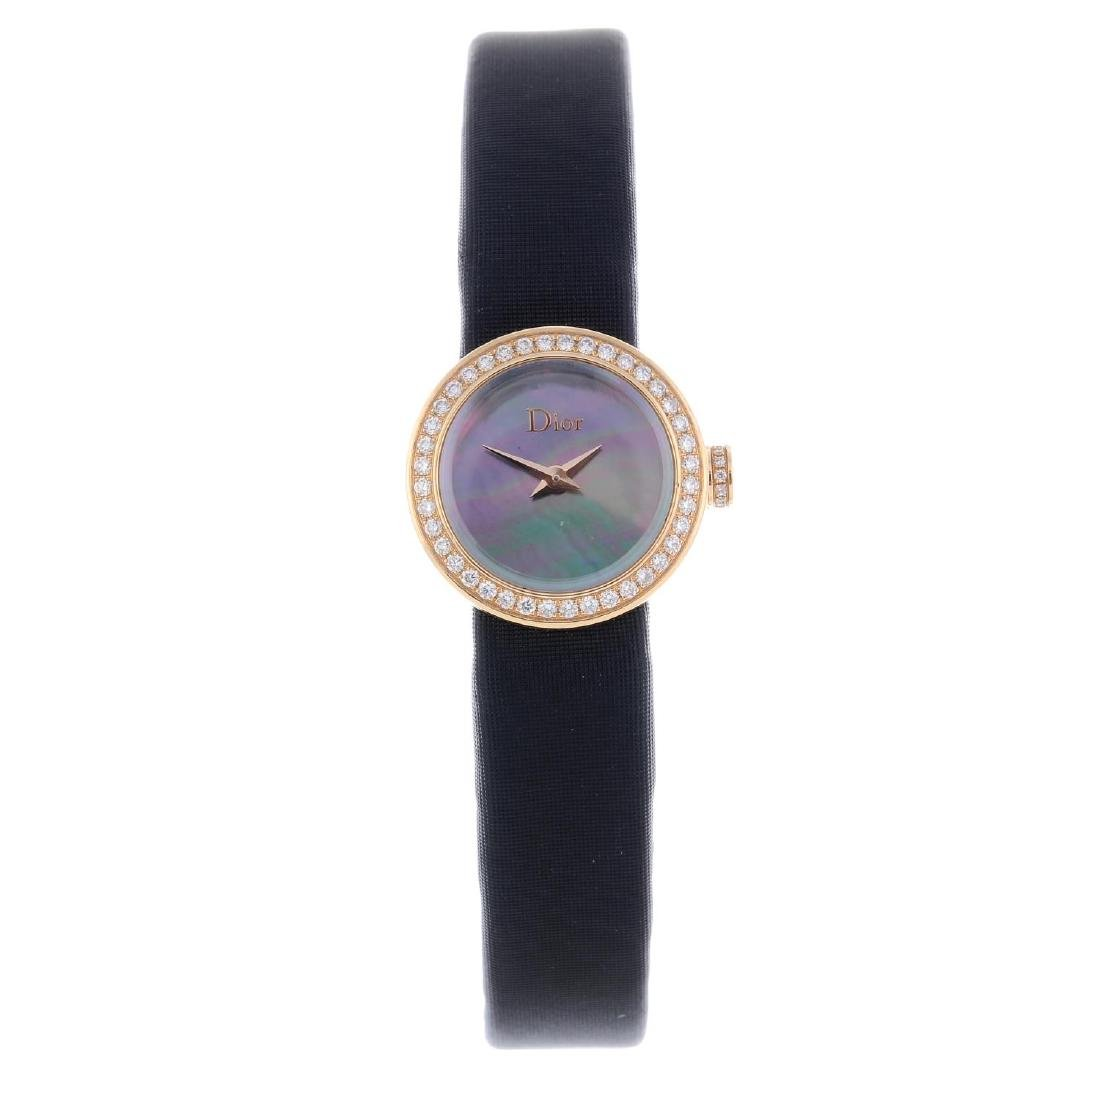 DIOR - a lady's wrist watch. 18ct rose gold case with